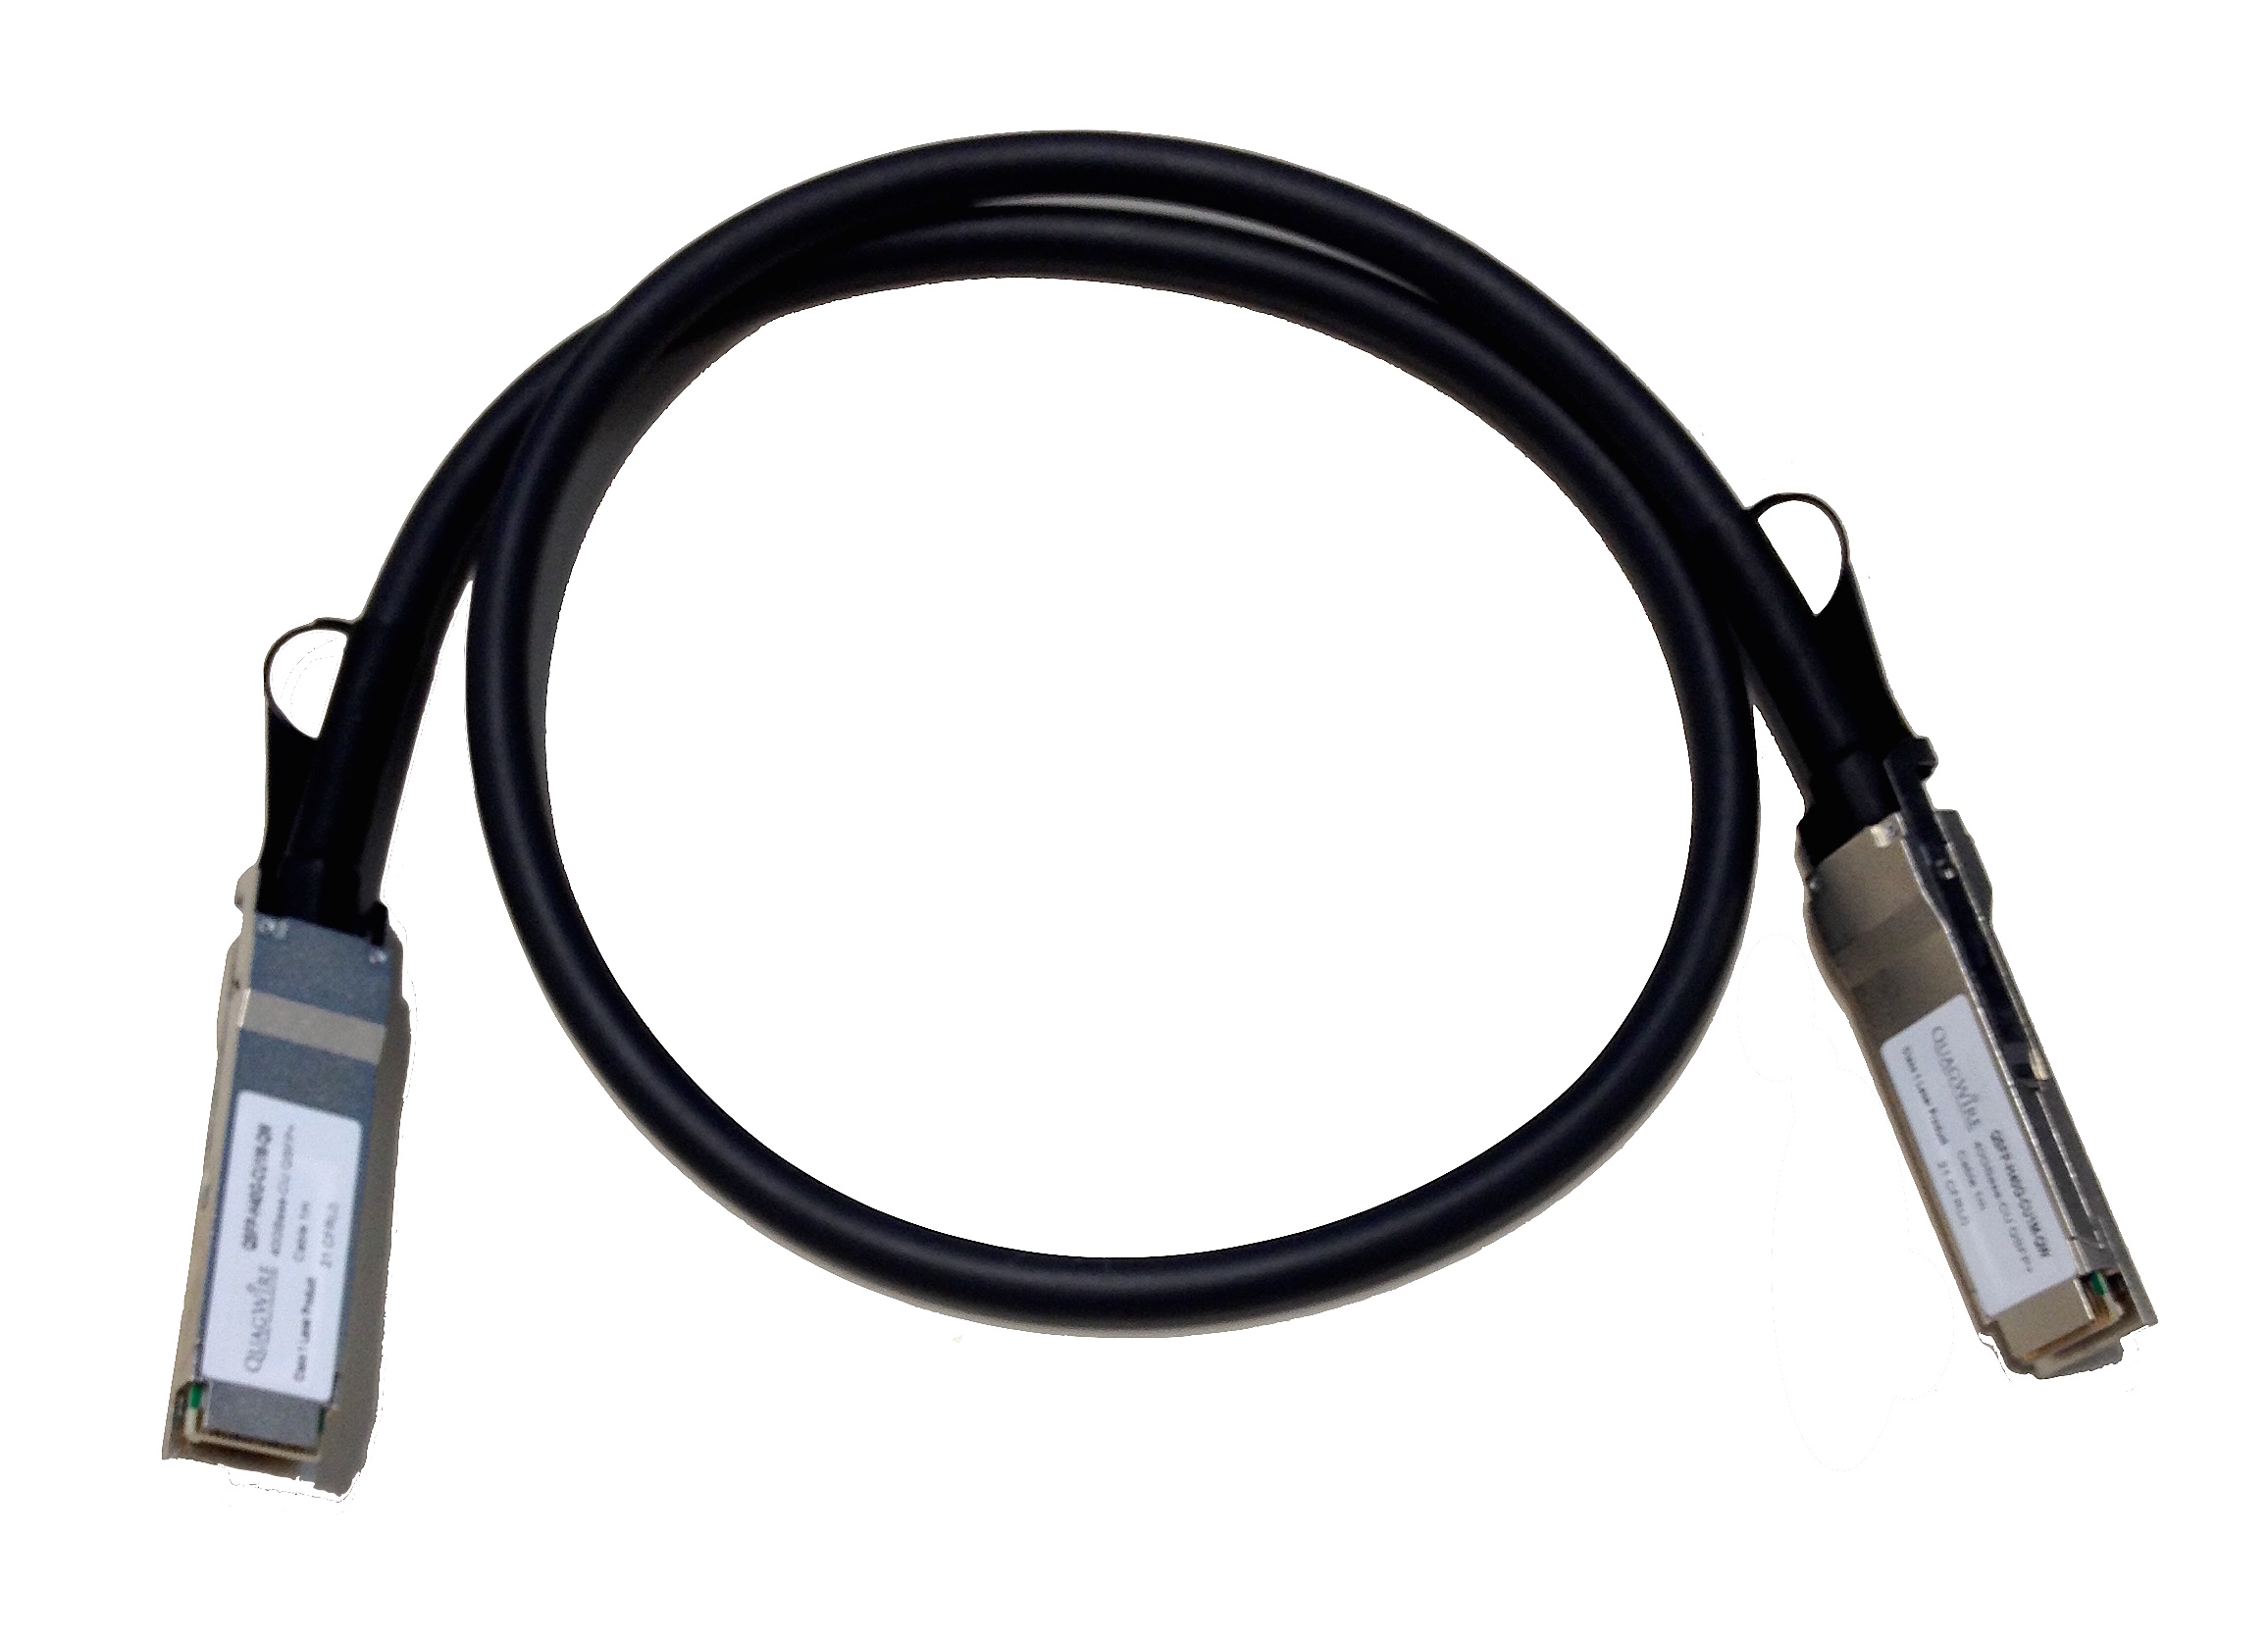 HP JD095C SFP+ 10G 0.65 DAC Twinax Copper Cable (JD095C-QW)